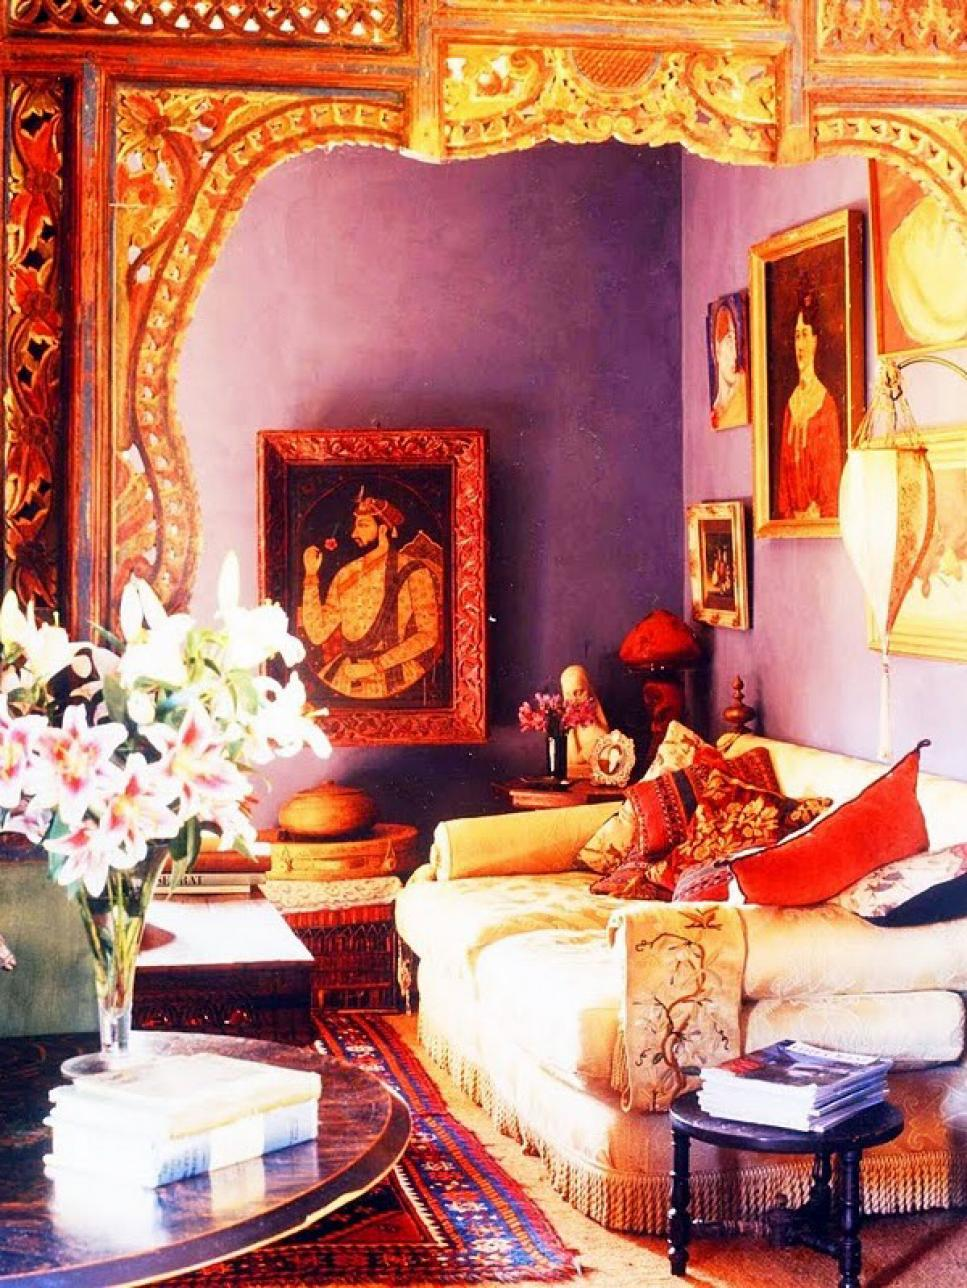 12 Spaces Inspired by India | HGTV